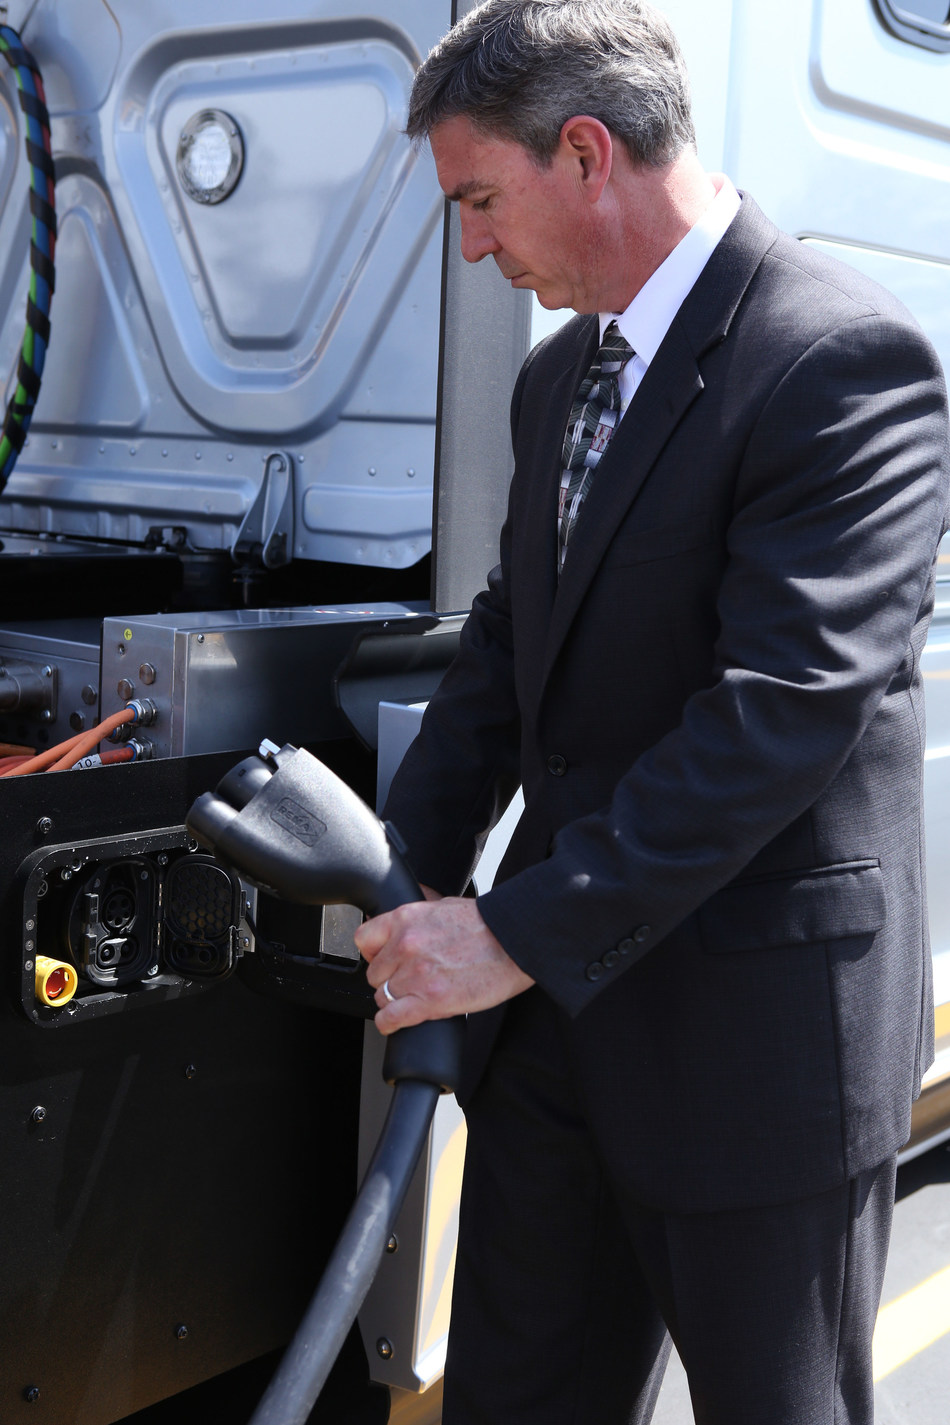 Andrew Cullen, senior vice president of fuels and facilities at Penske Truck Leasing preparing to charge Daimler Trucks North America's electric class 8 Freightliner eCascadia semi-truck.